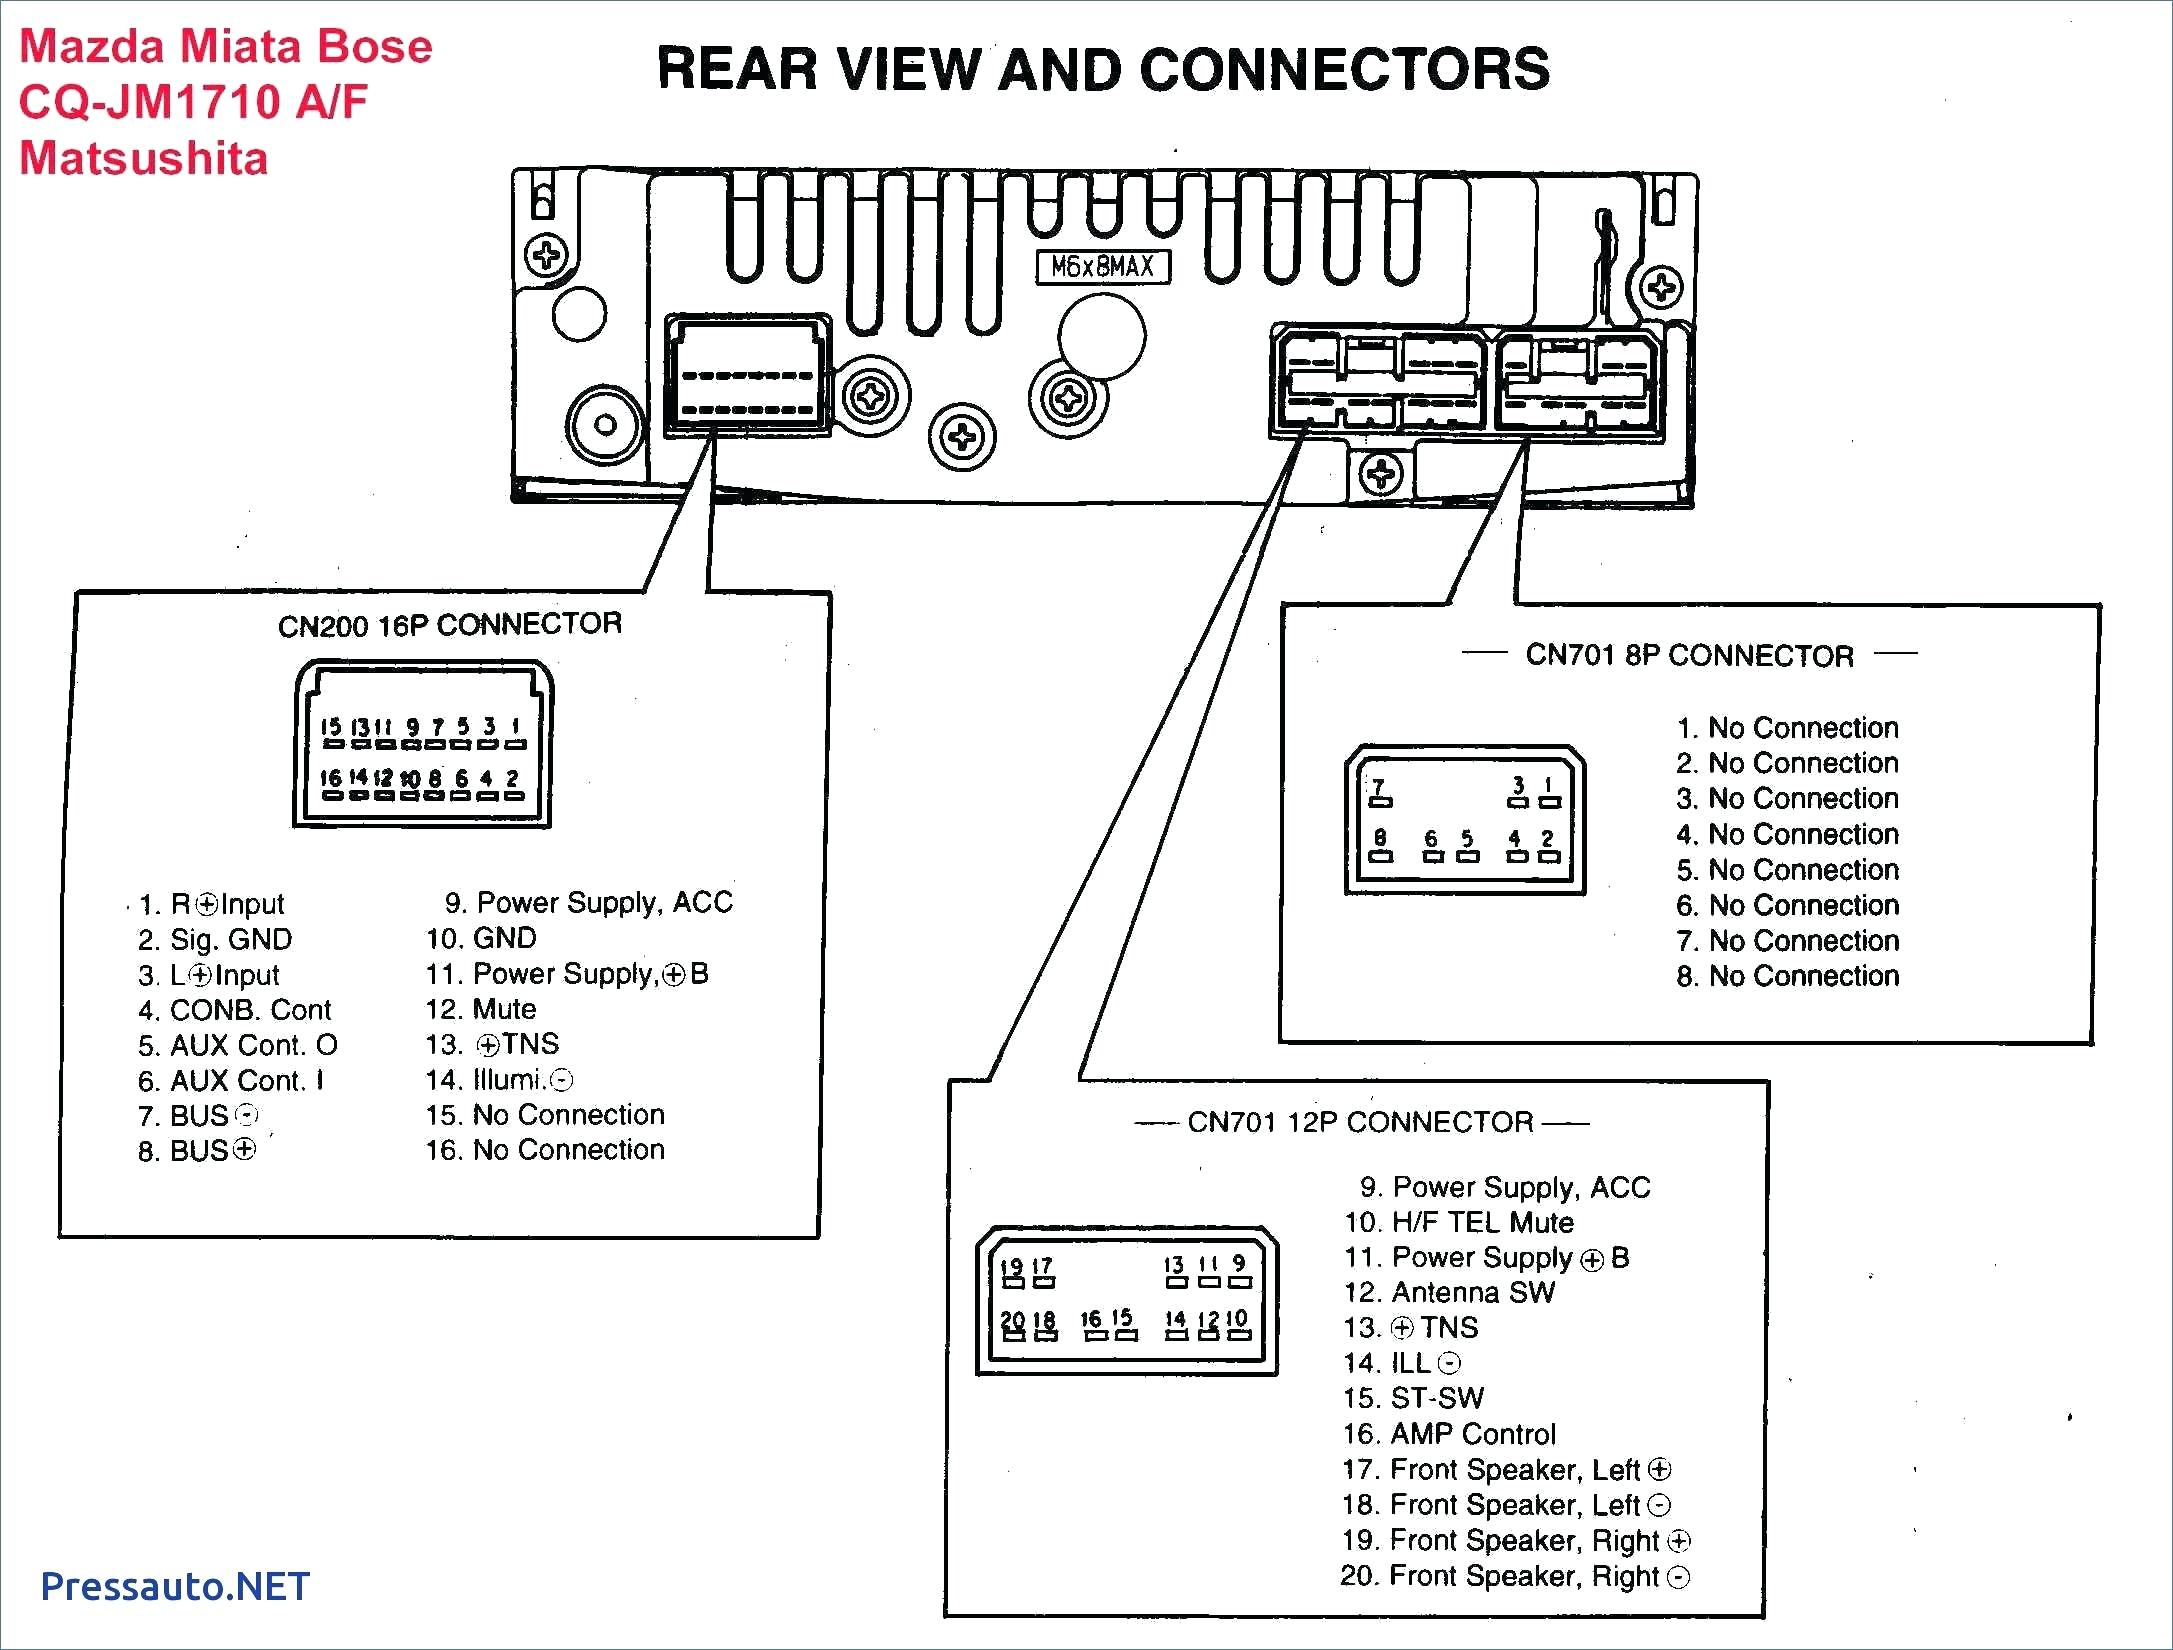 [DIAGRAM_38IU]  Bmw Z3 Radio Wiring Diagram Diagram Base Website Wiring Diagram -  HEARTVALVESDIAGRAM.AISC-NET.IT | 2000 Bmw 323i Radio Antenna Wiring Diagram |  | Diagram Base Website Full Edition - aisc